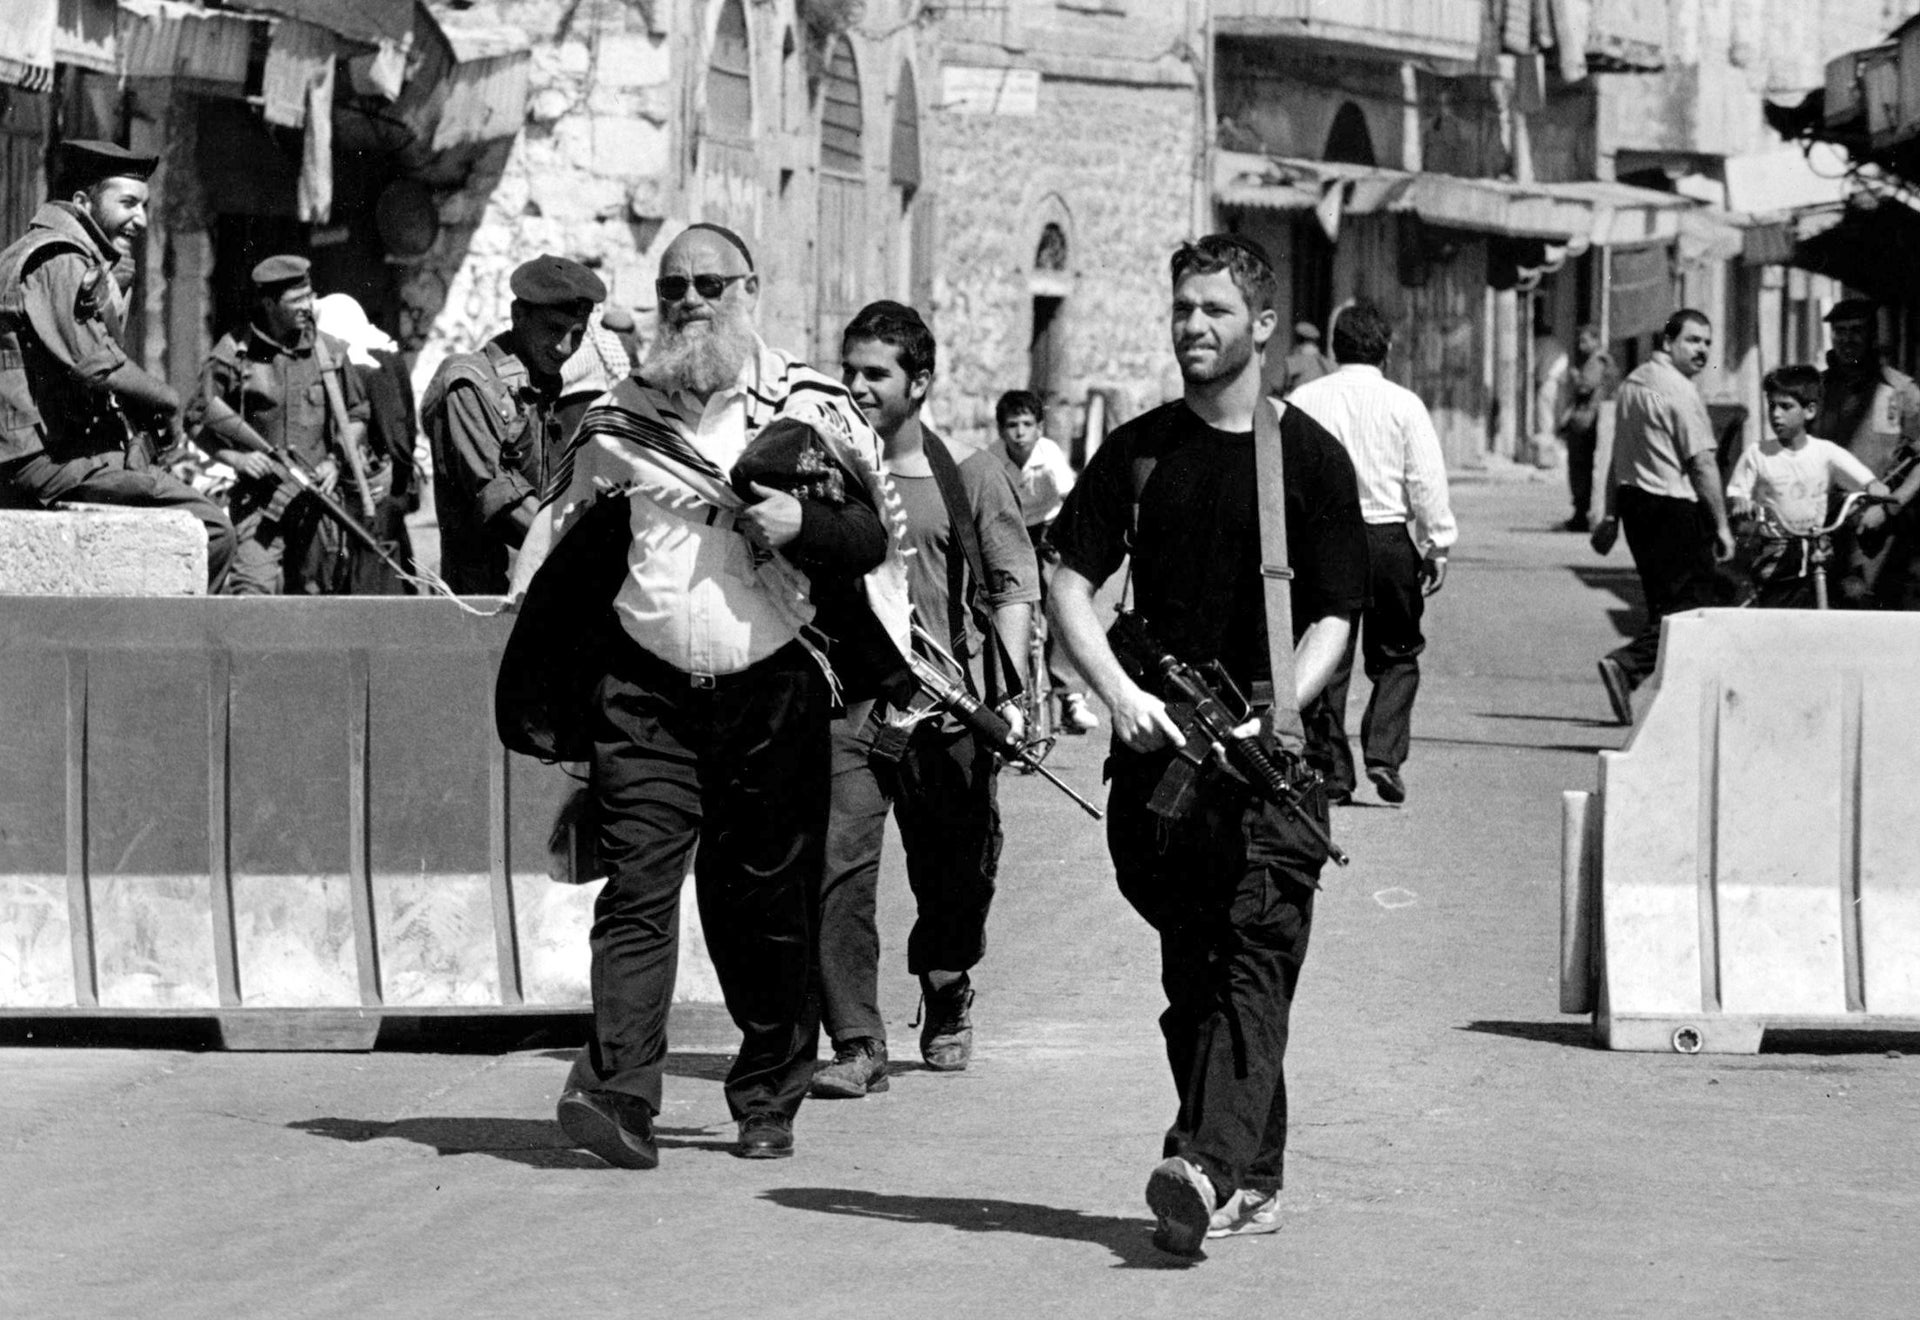 Rabbi Levinger and his bodyguards in Hebron, 1993.